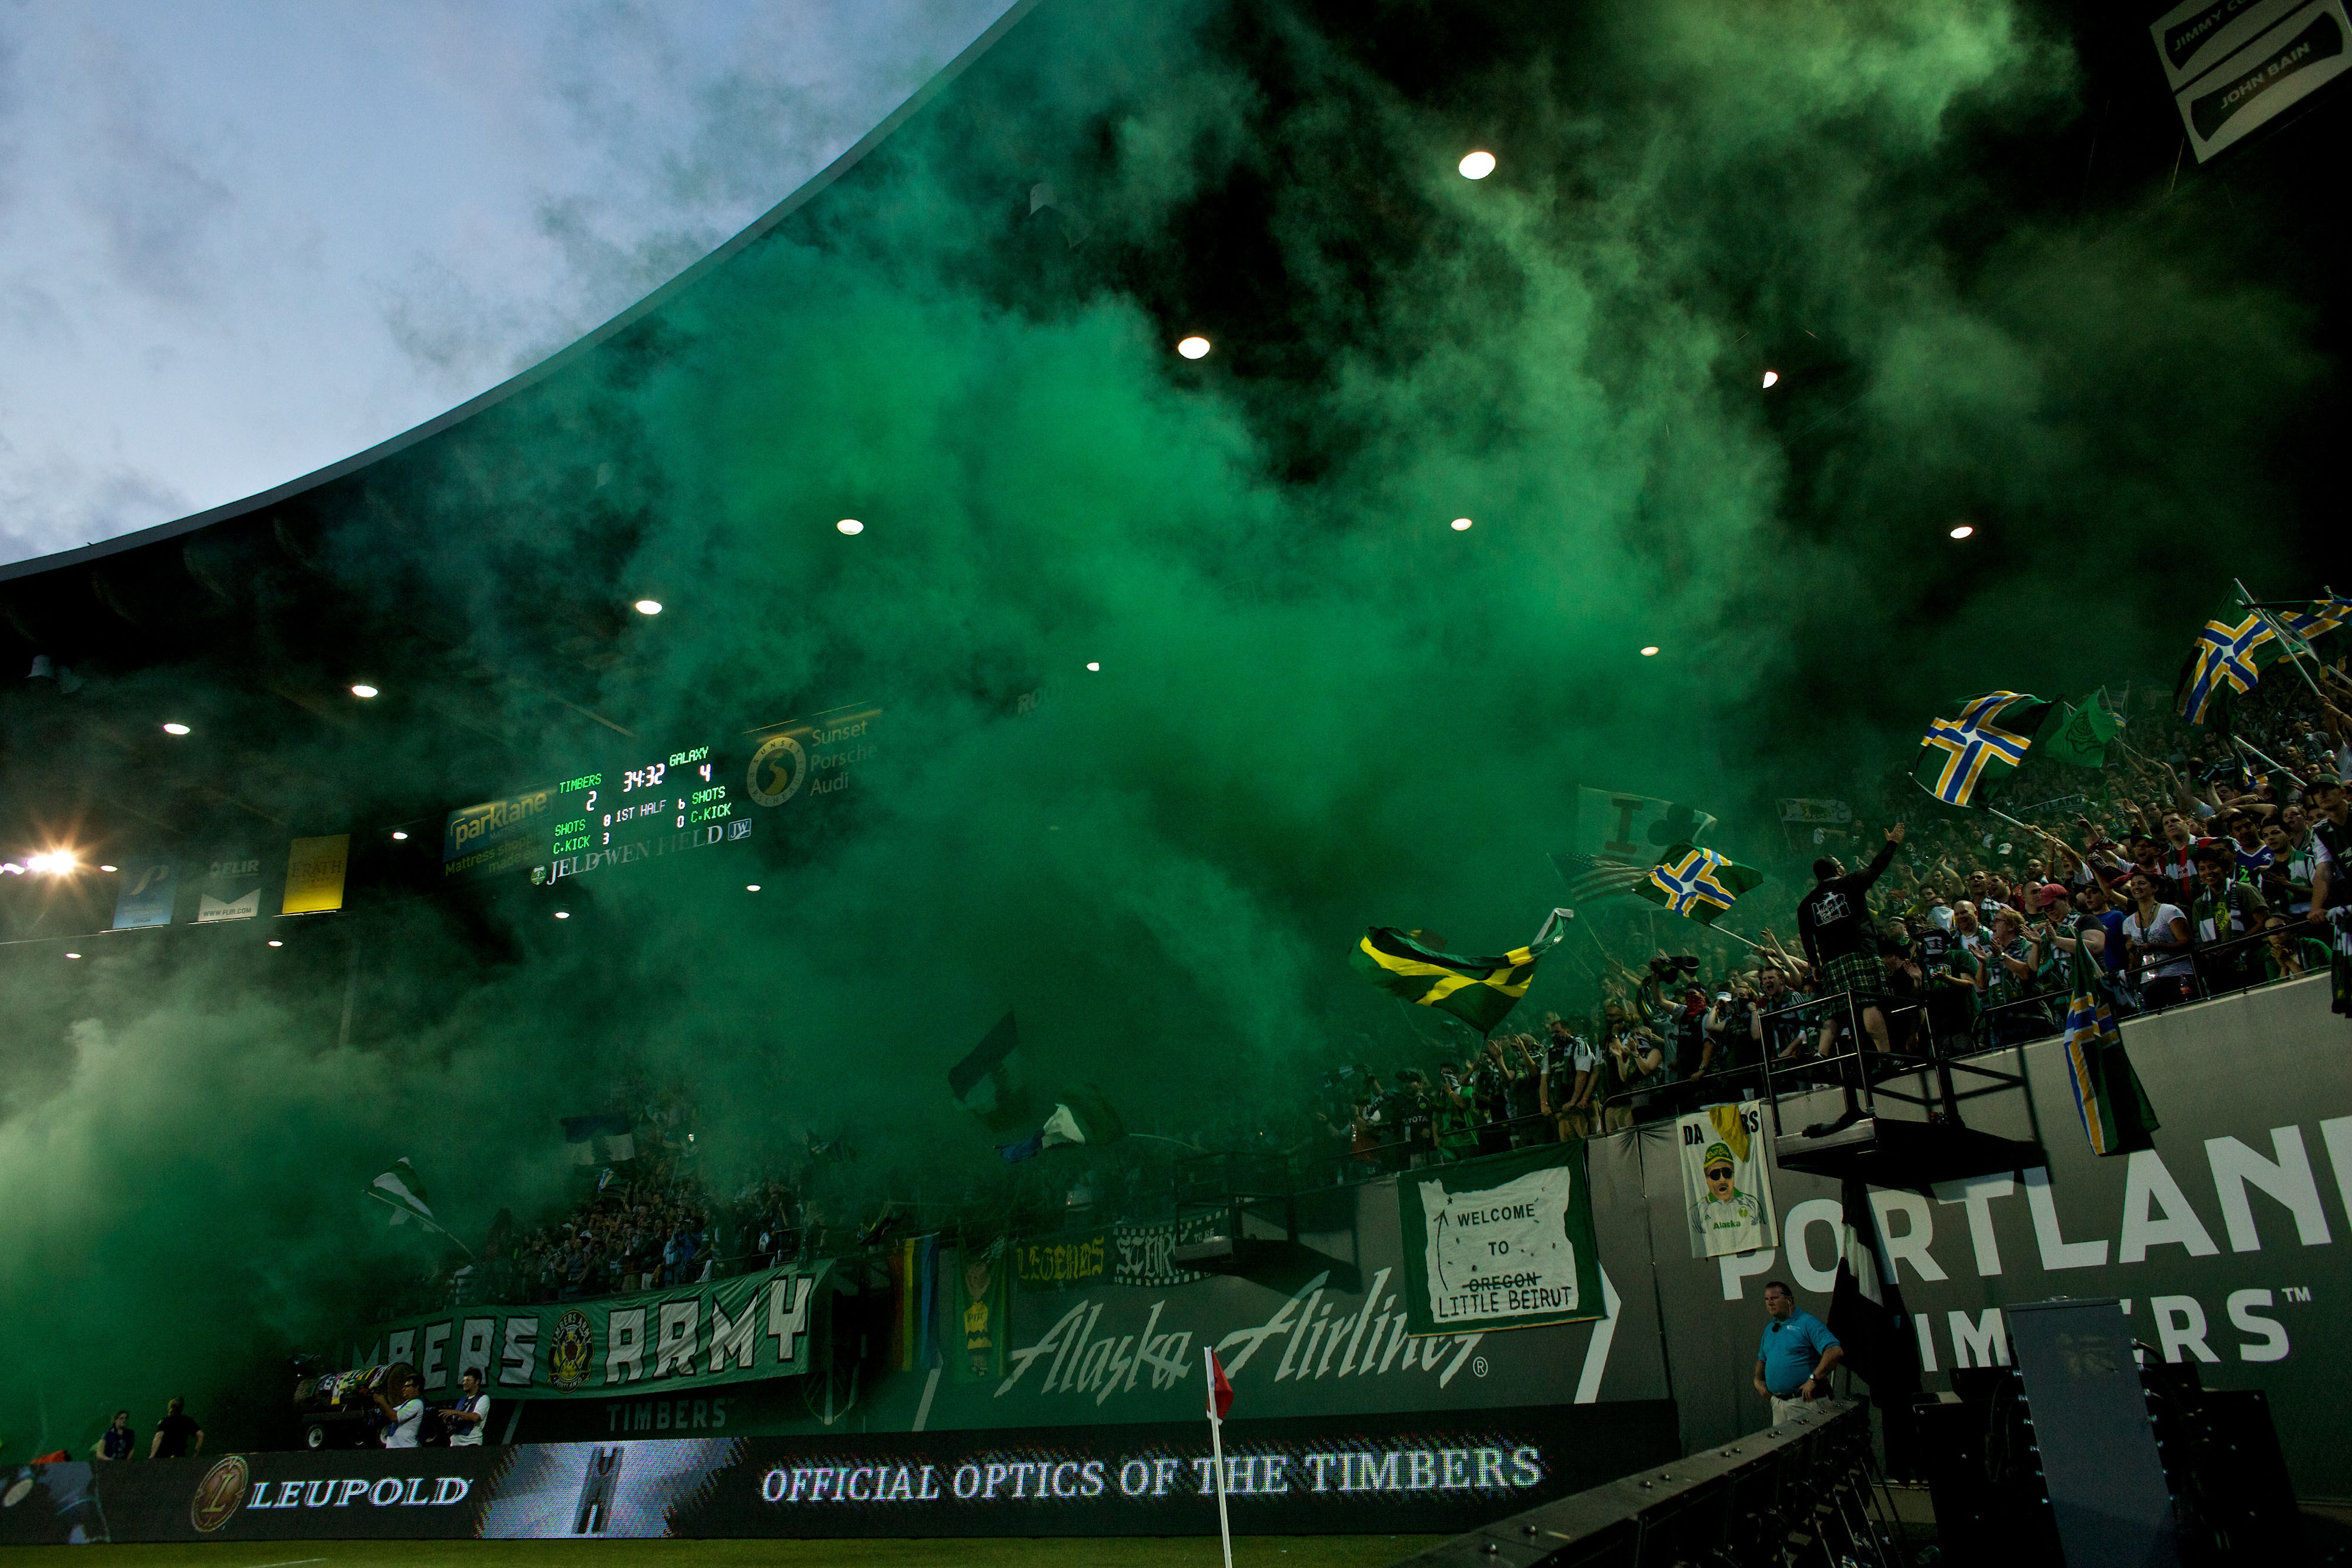 4000x2667 - Portland Timbers Wallpapers 13